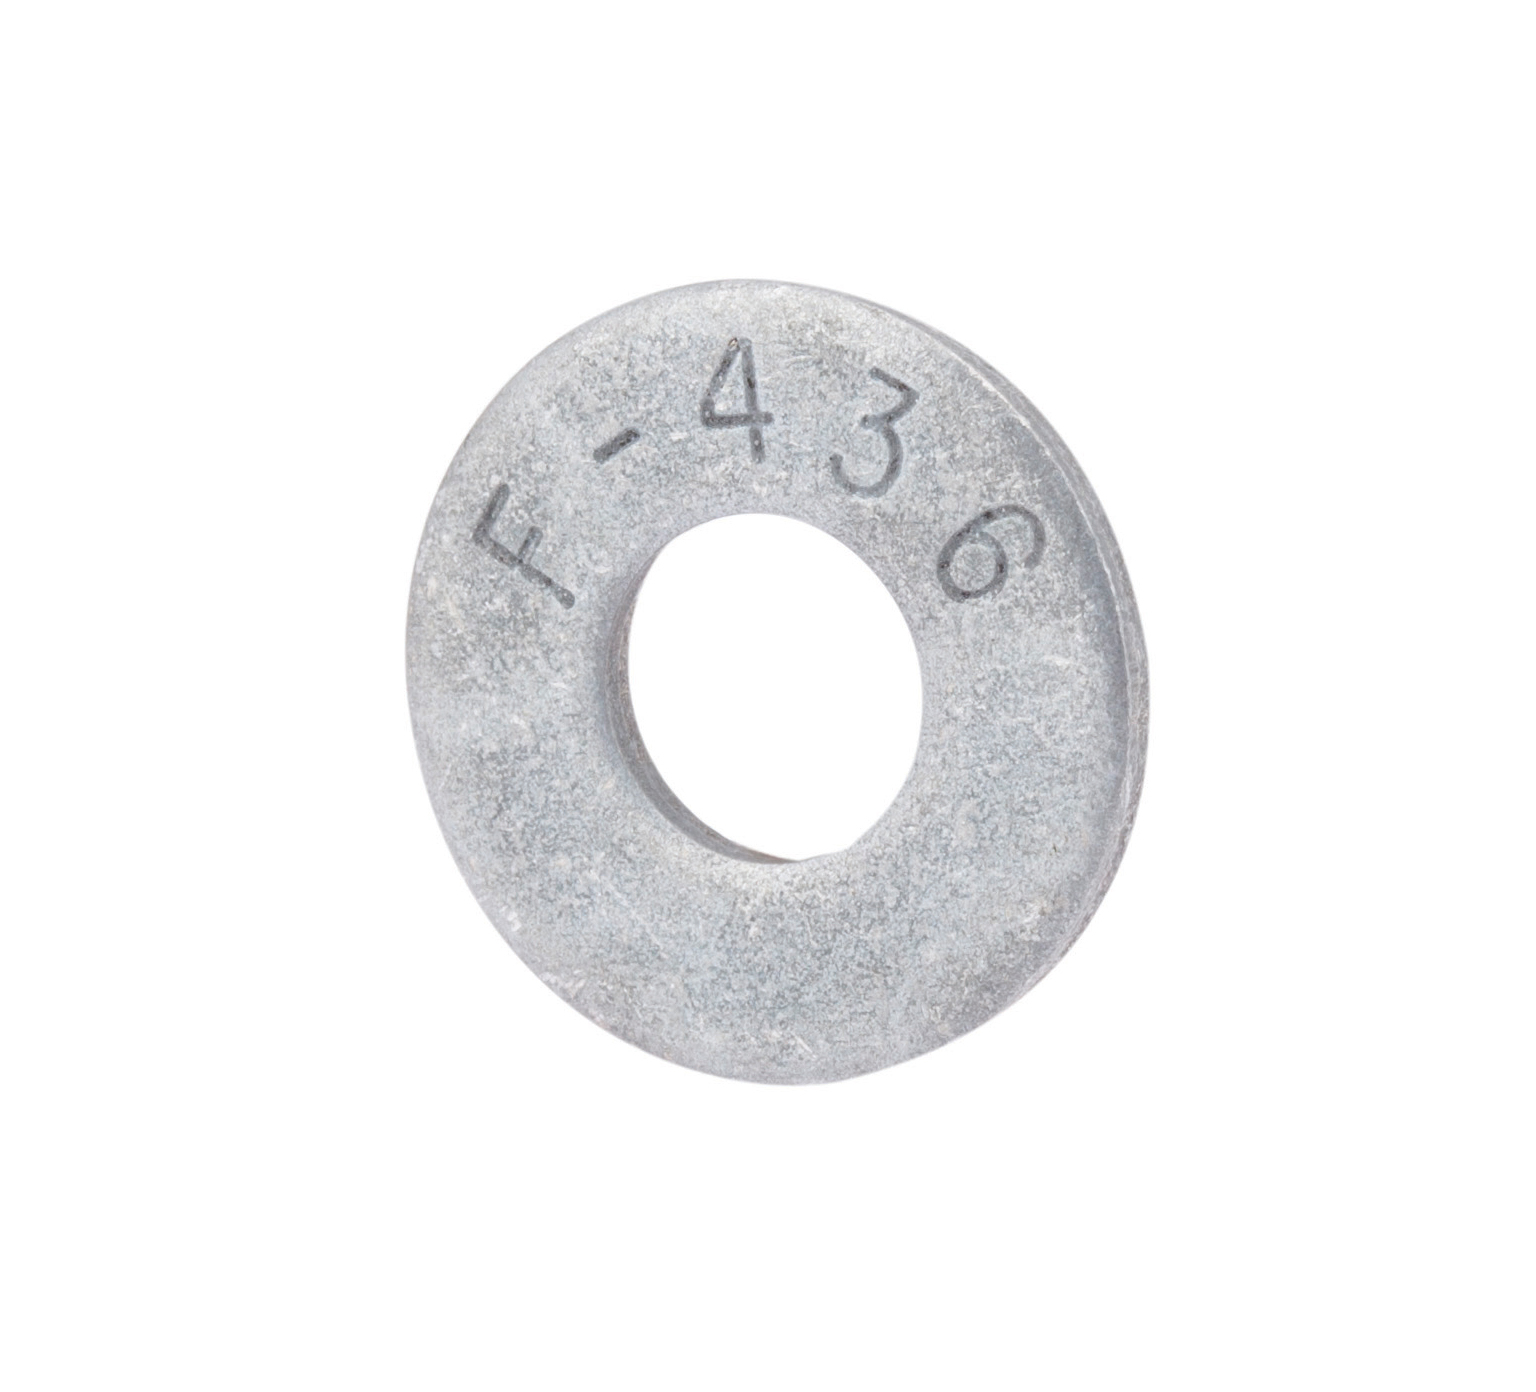 32491 Steel Flat Washer - 0.875 x 0.083 in alt 1